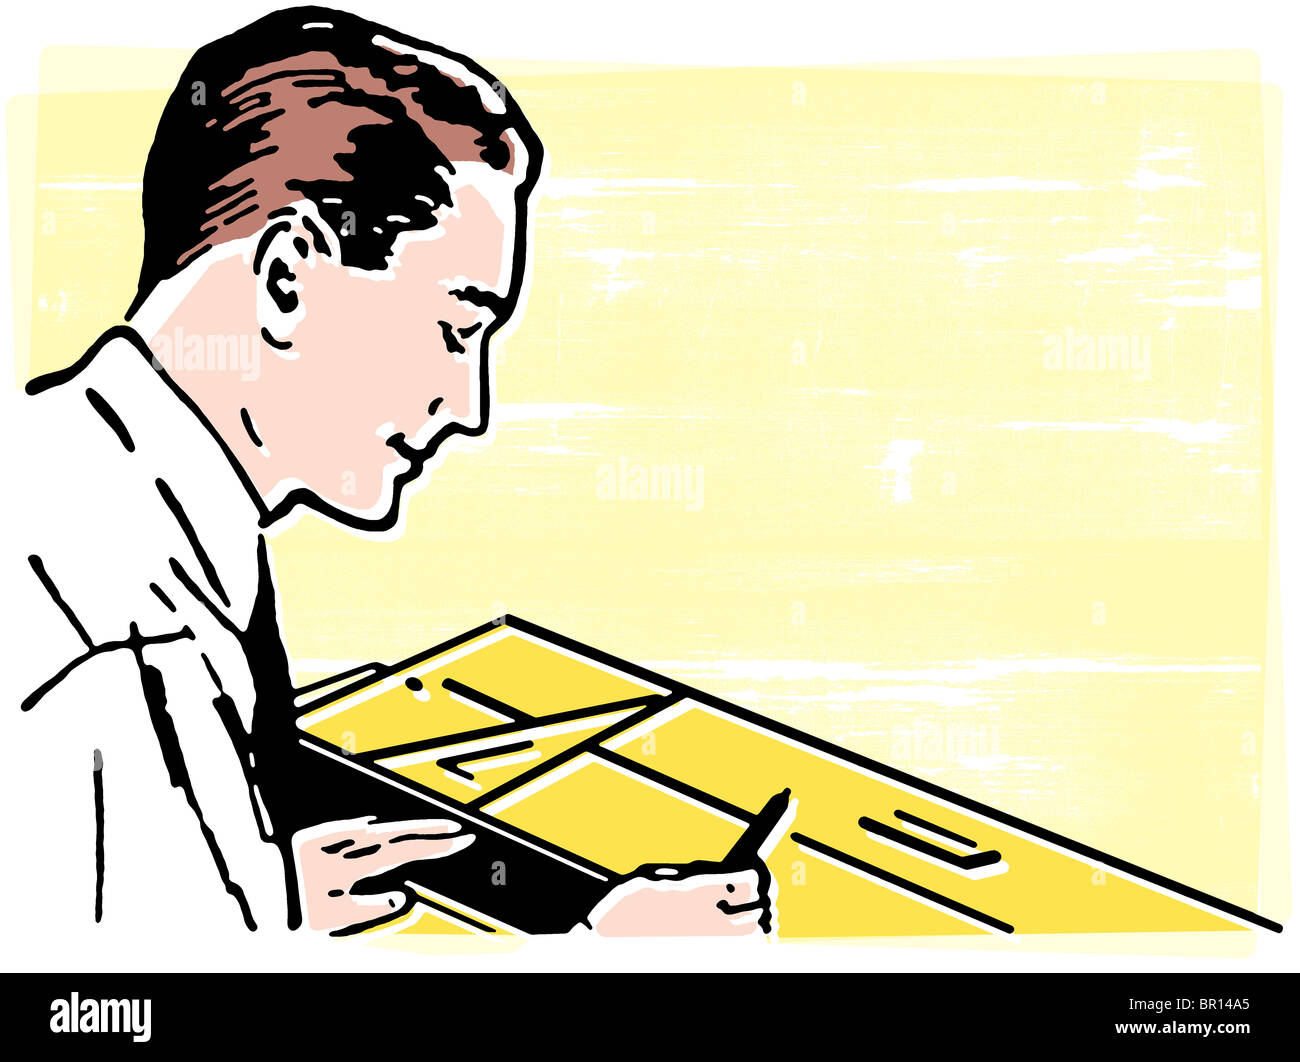 A vintage illustration of an architect - Stock Image